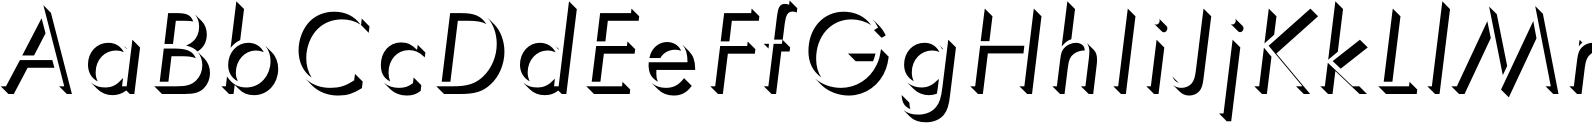 Futura Only Shadow D Light Oblique Font